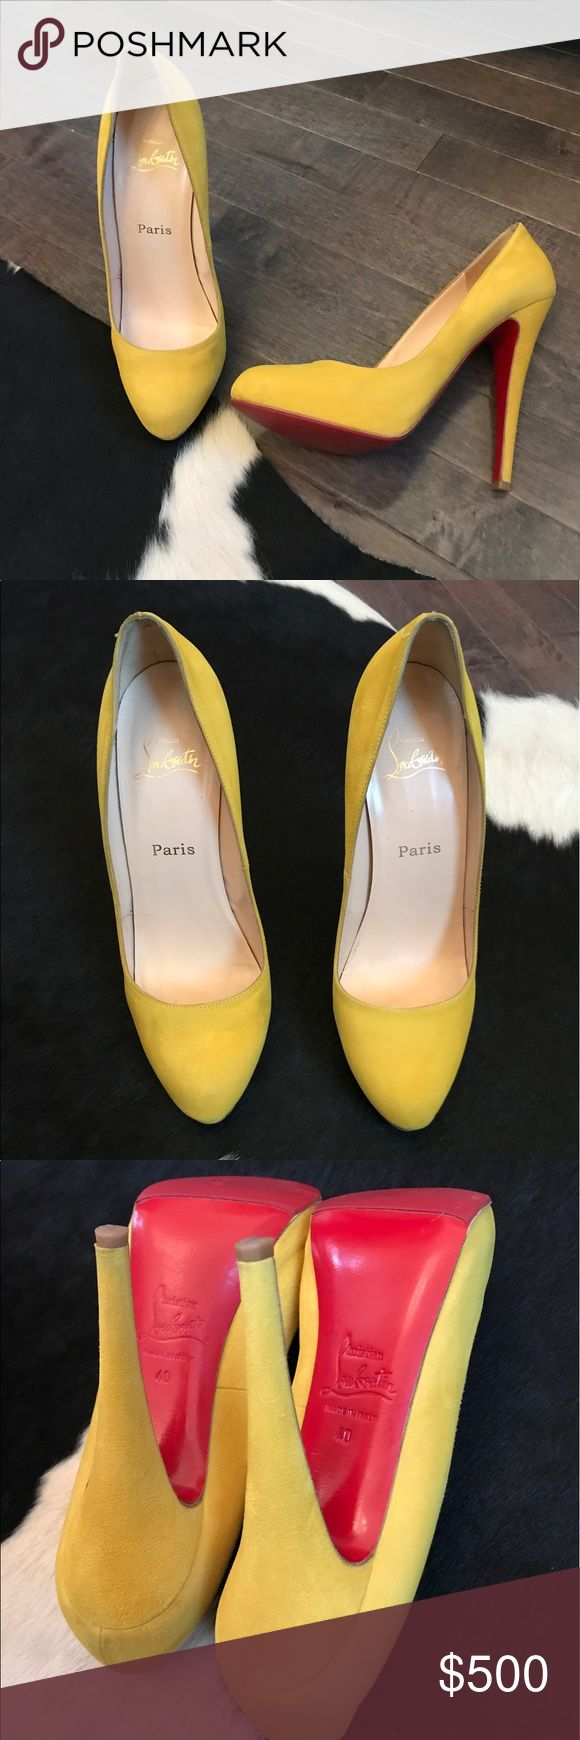 Christian Louboutins bright yellow suede pumps! Beautiful Christian Louboutin canary yellow suede pumps. EXCELLENT condition, has only been worn once indoors, but I had them professionaly cleaned. Sky high 5 1/2 inch heels!!!! One minuscule flaw as shown in photo 7, so small it's nearly impossible to photograph. Size 40 but fits a US 8.5 or 9 best. Please see the CLOSET RULES listing at the top of my closet for all closet rules to avoid any issues!!😘 Christian Louboutin Shoes Heels